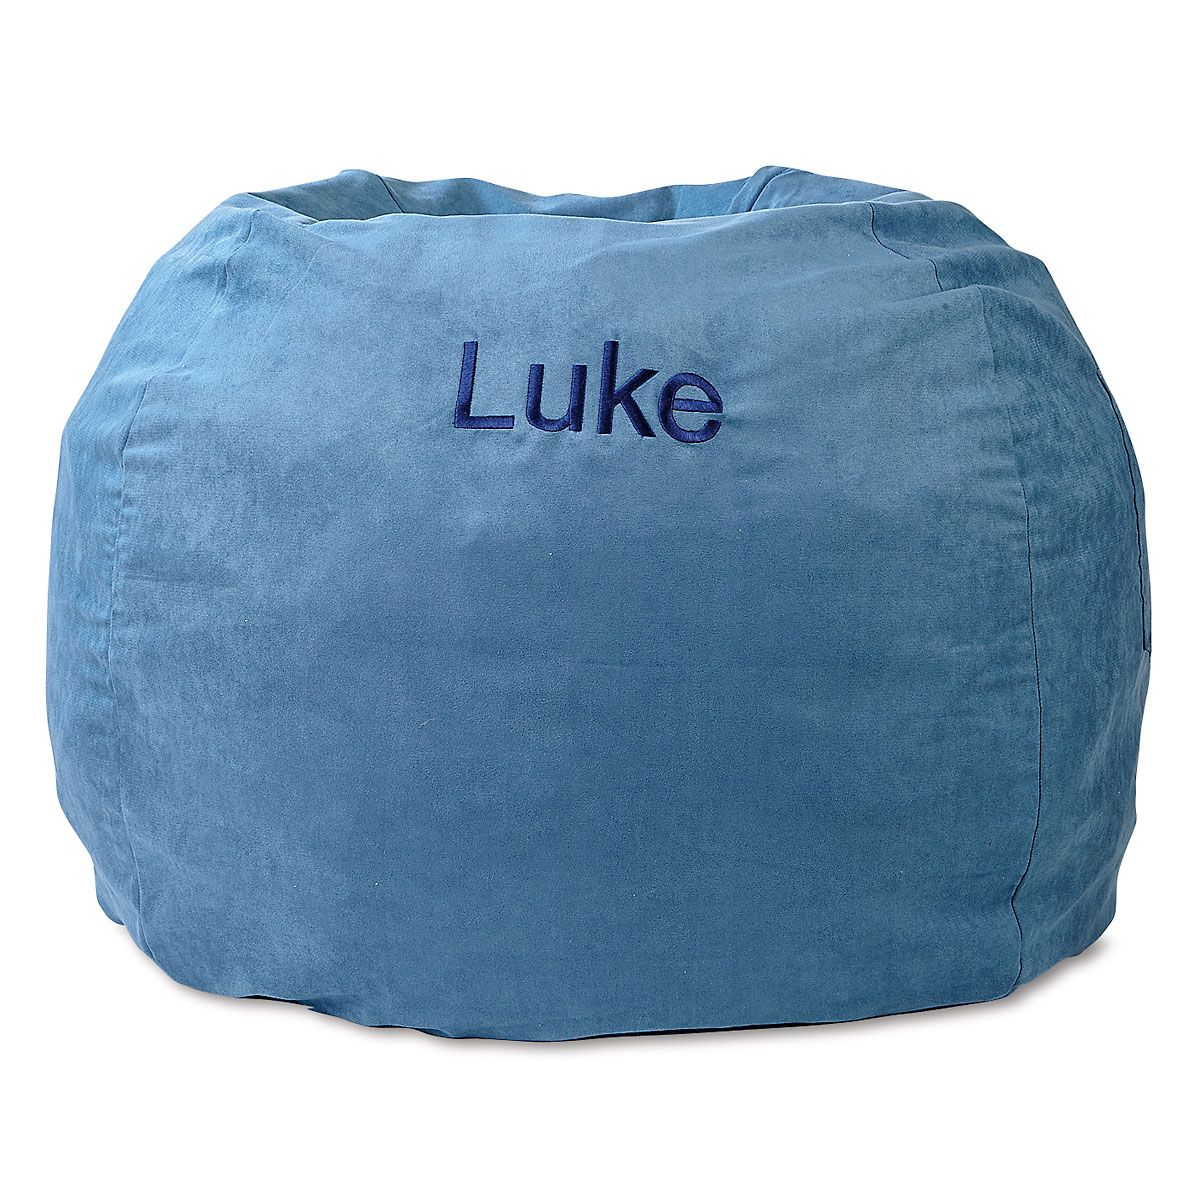 Blue Personalized Bean Bag Chair